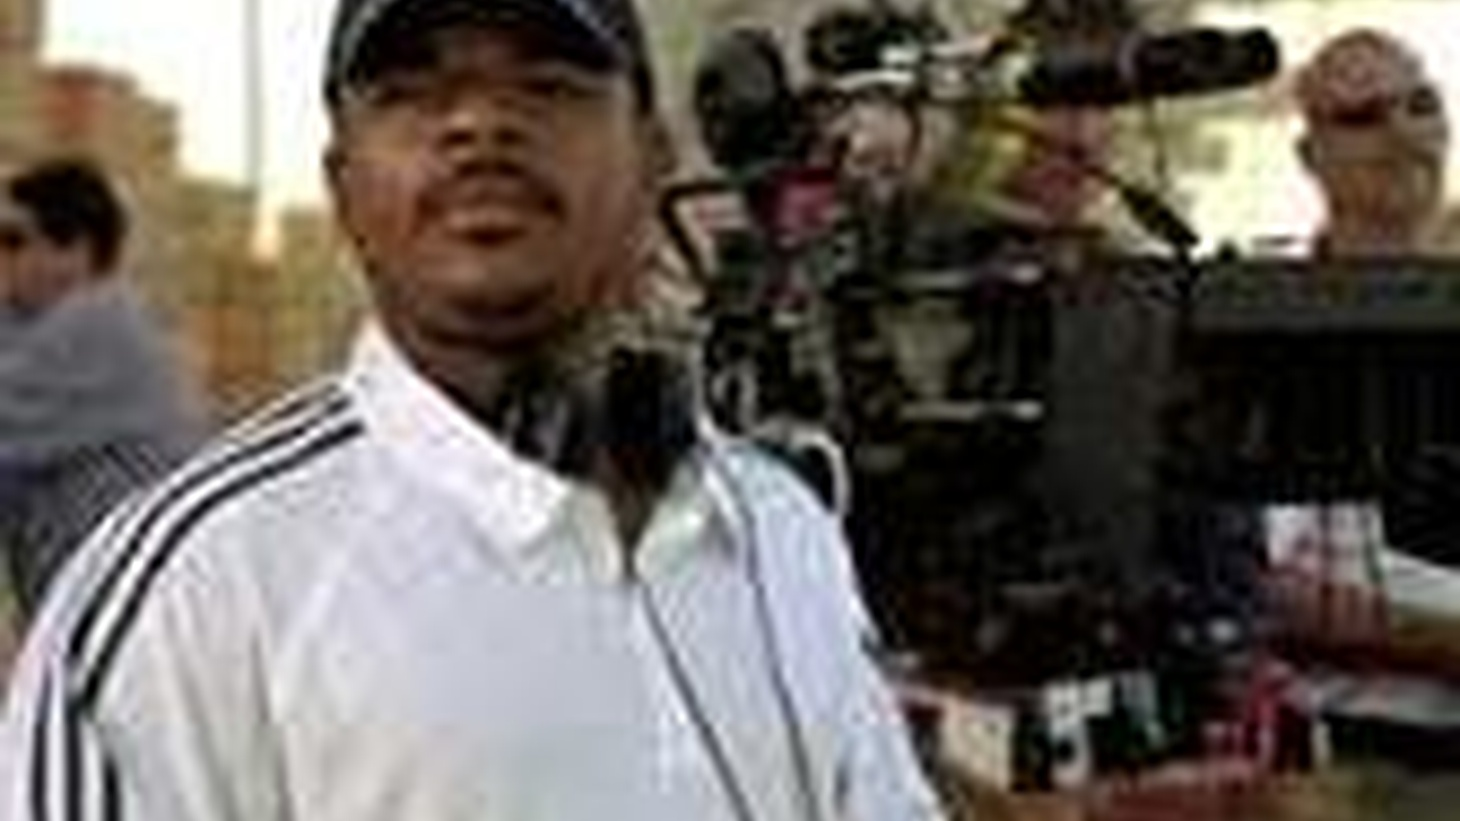 """F Gary Gray, known for directing such films as """"Friday,"""" """"Set It Off,"""" and """"A Man Apart,"""" drops into Chocolate City to discuss """"The Italian Job."""""""